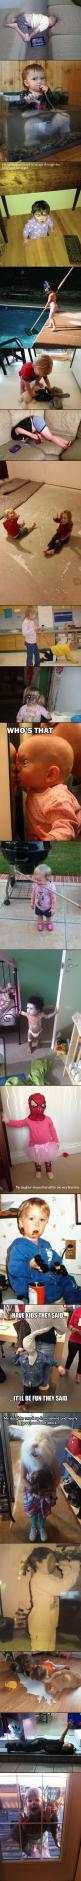 These are hilarious!: Giggle, Cat Face, Funny Pics, Funny Stuff, Kids, So Funny